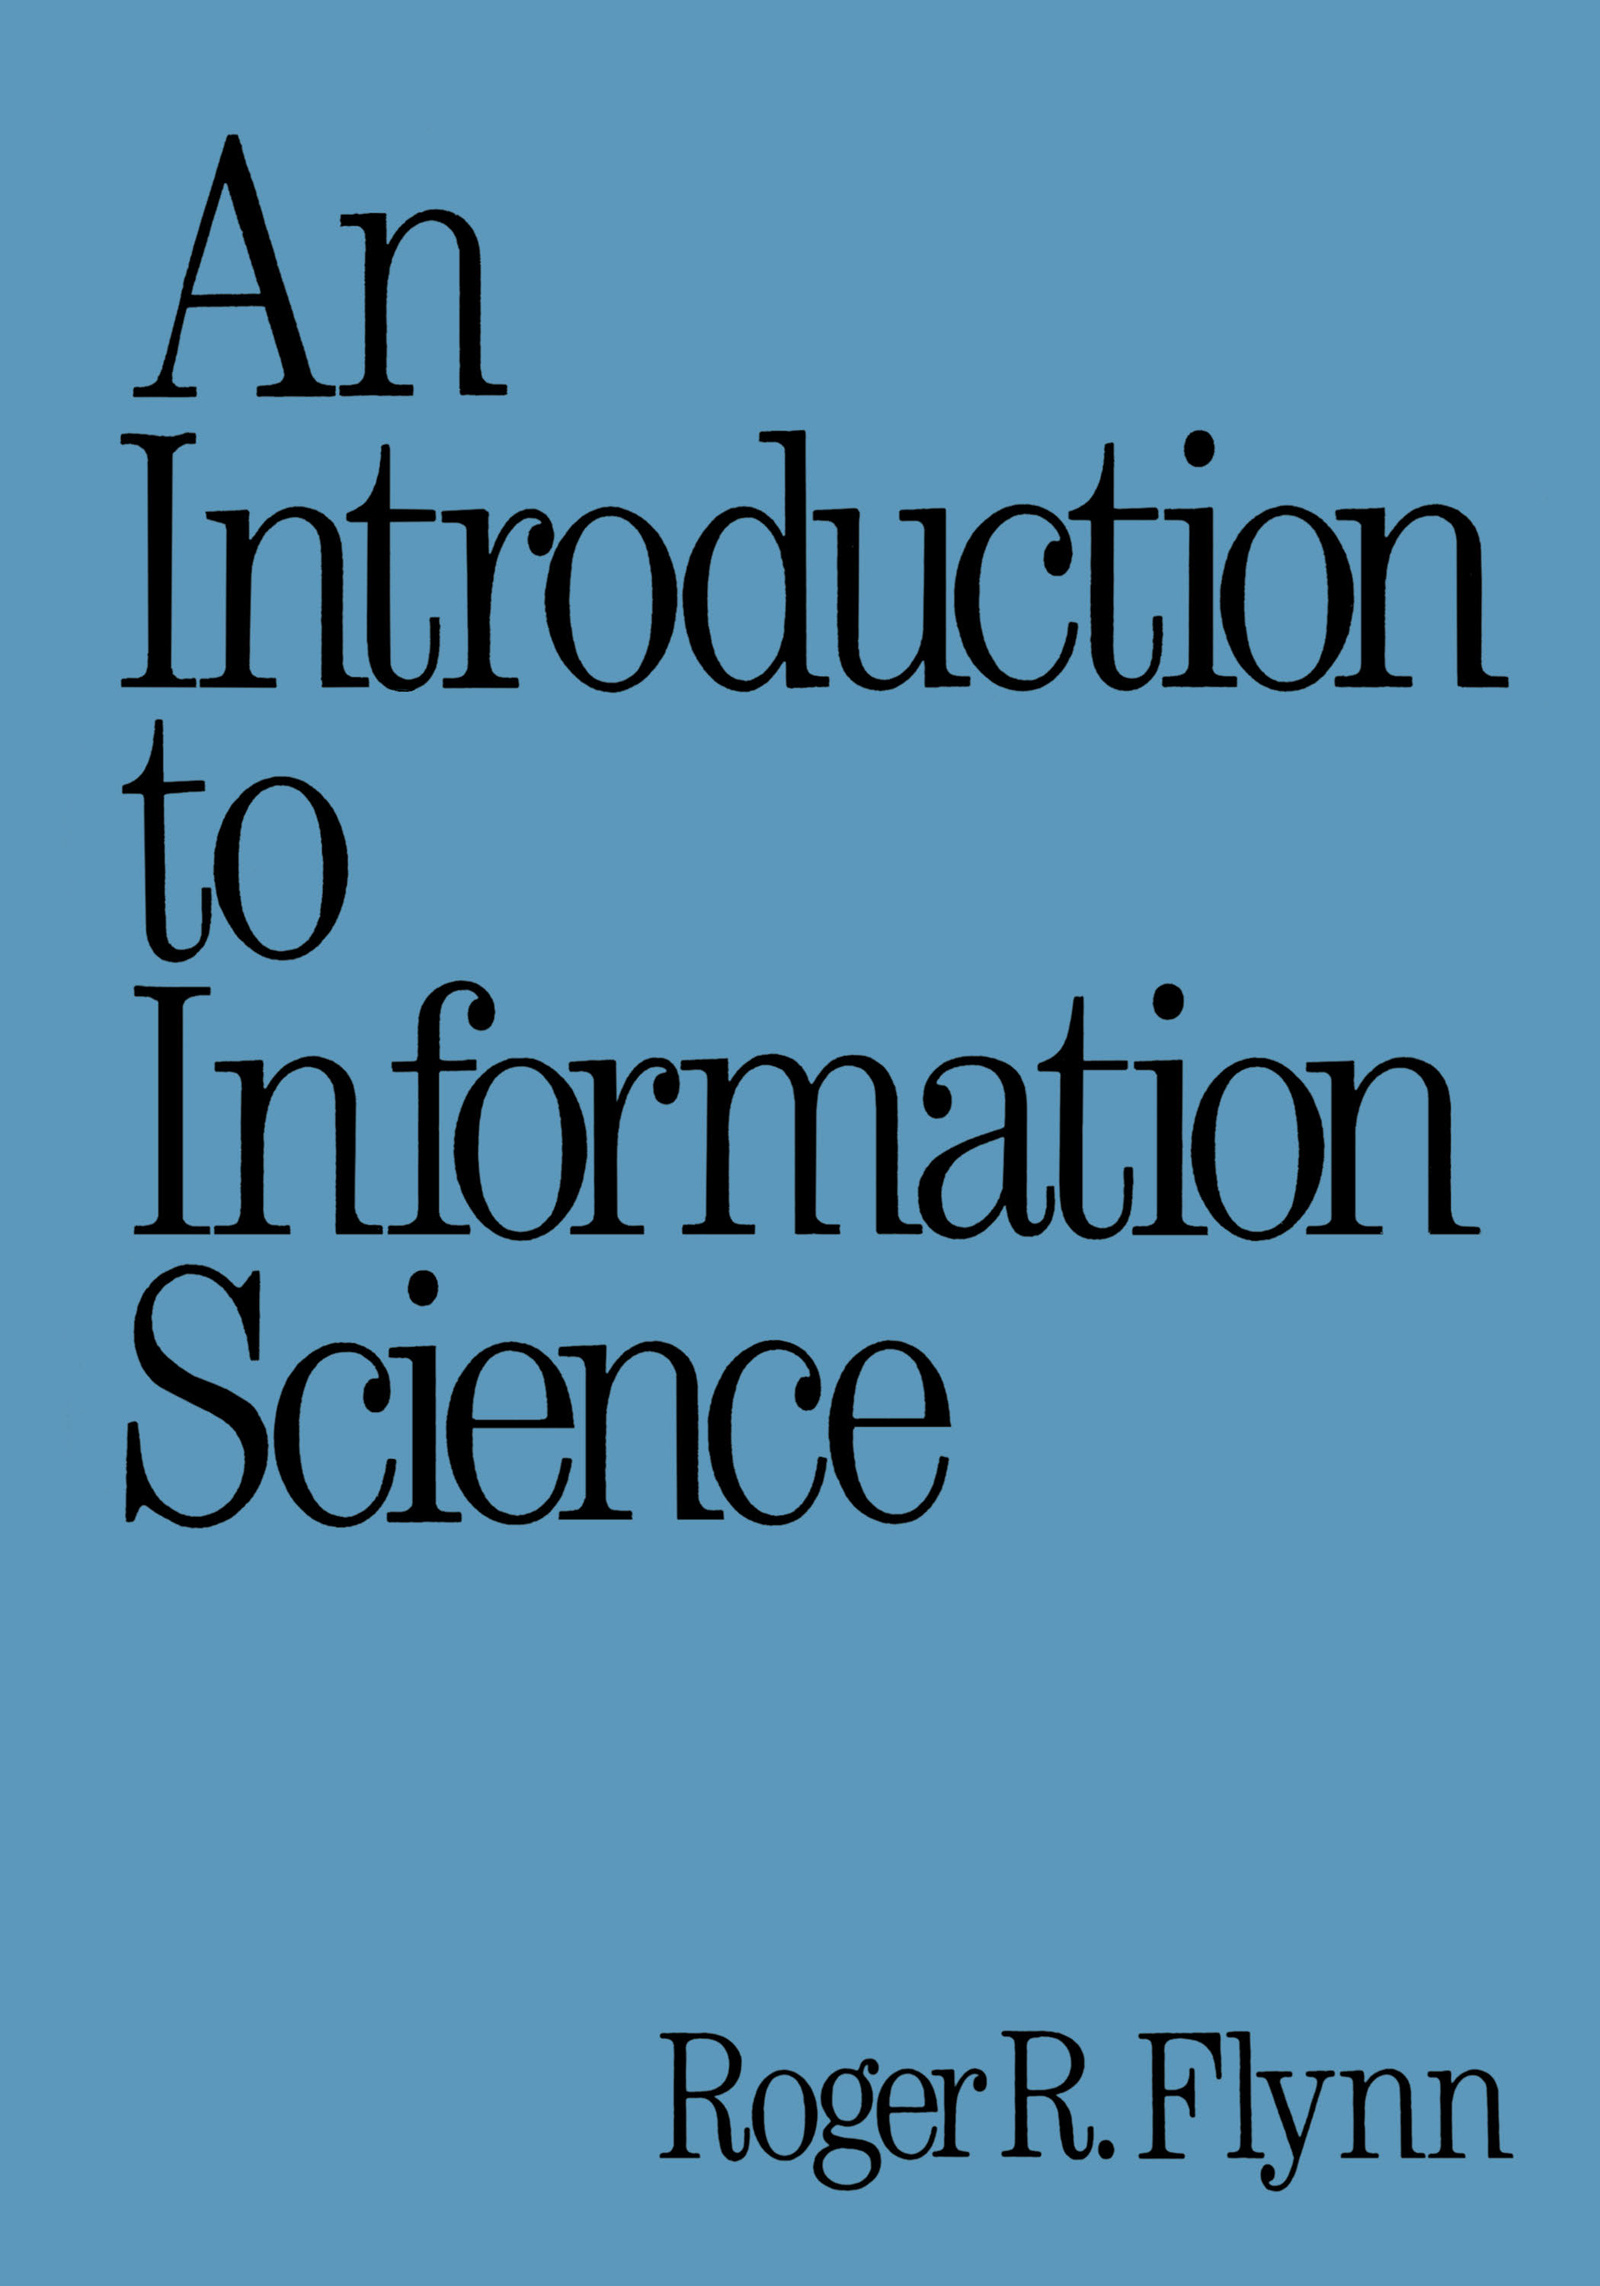 An Introduction to Information Science